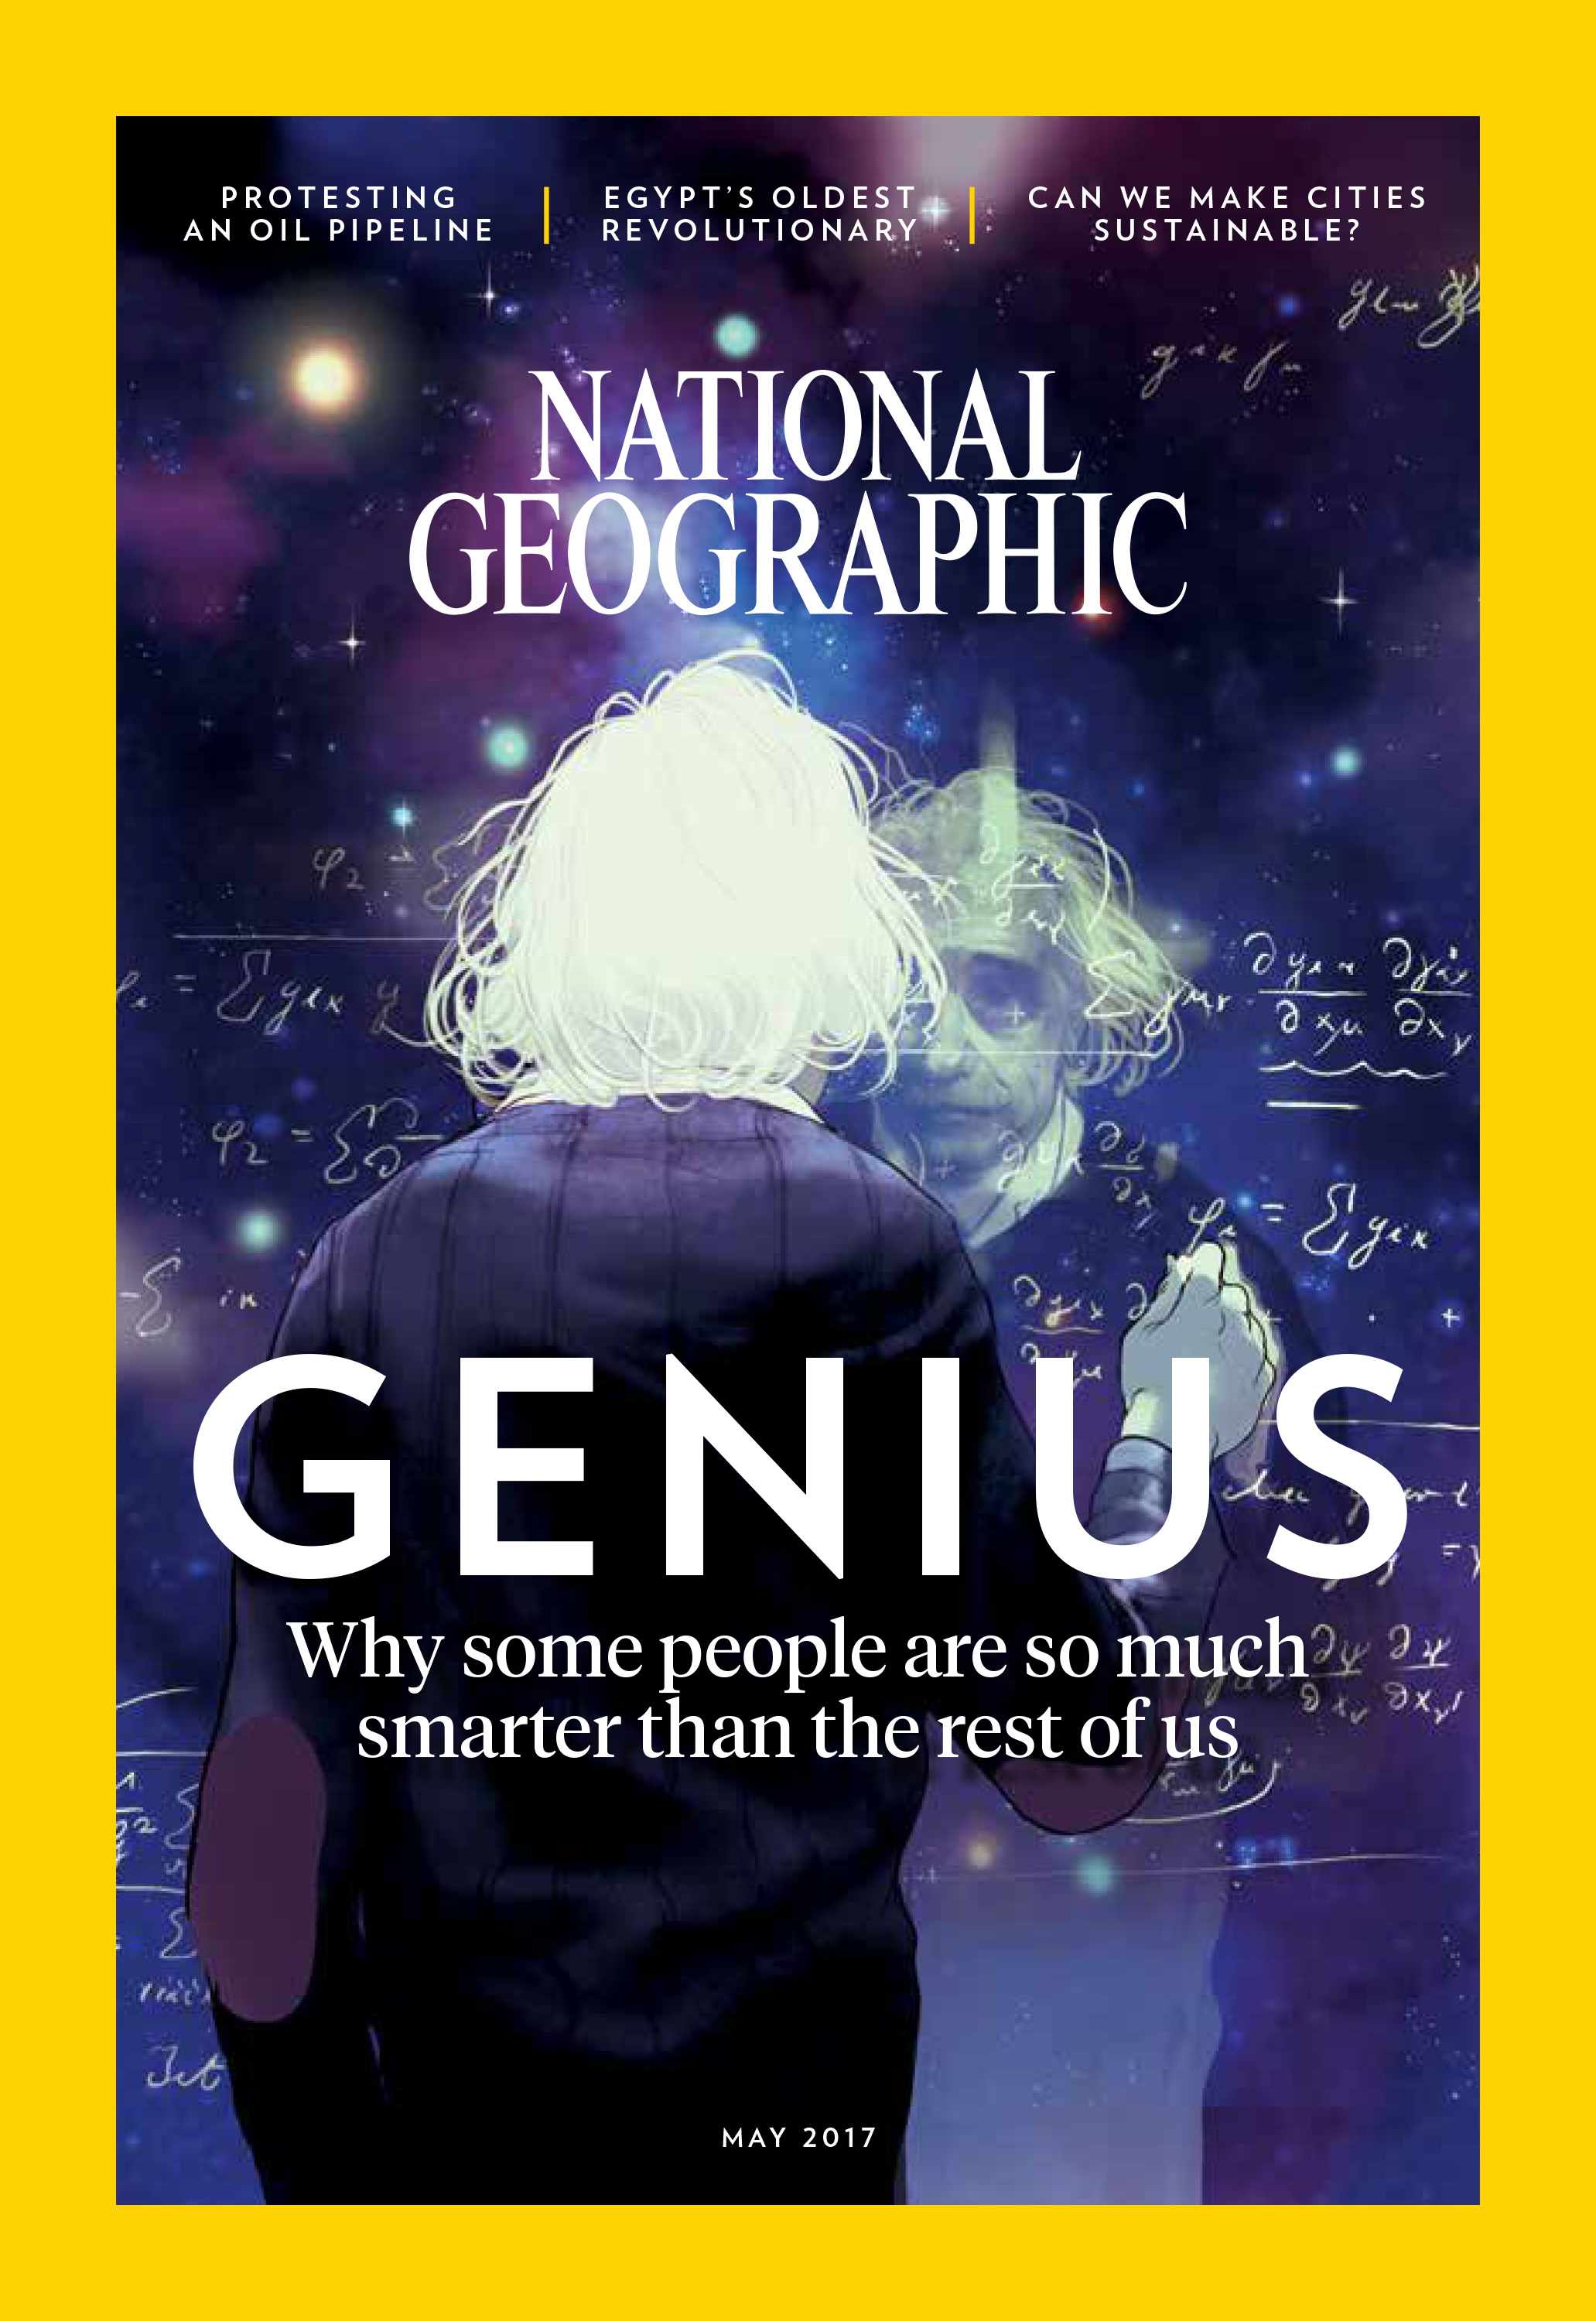 Genius Cover Image High Res.jpg